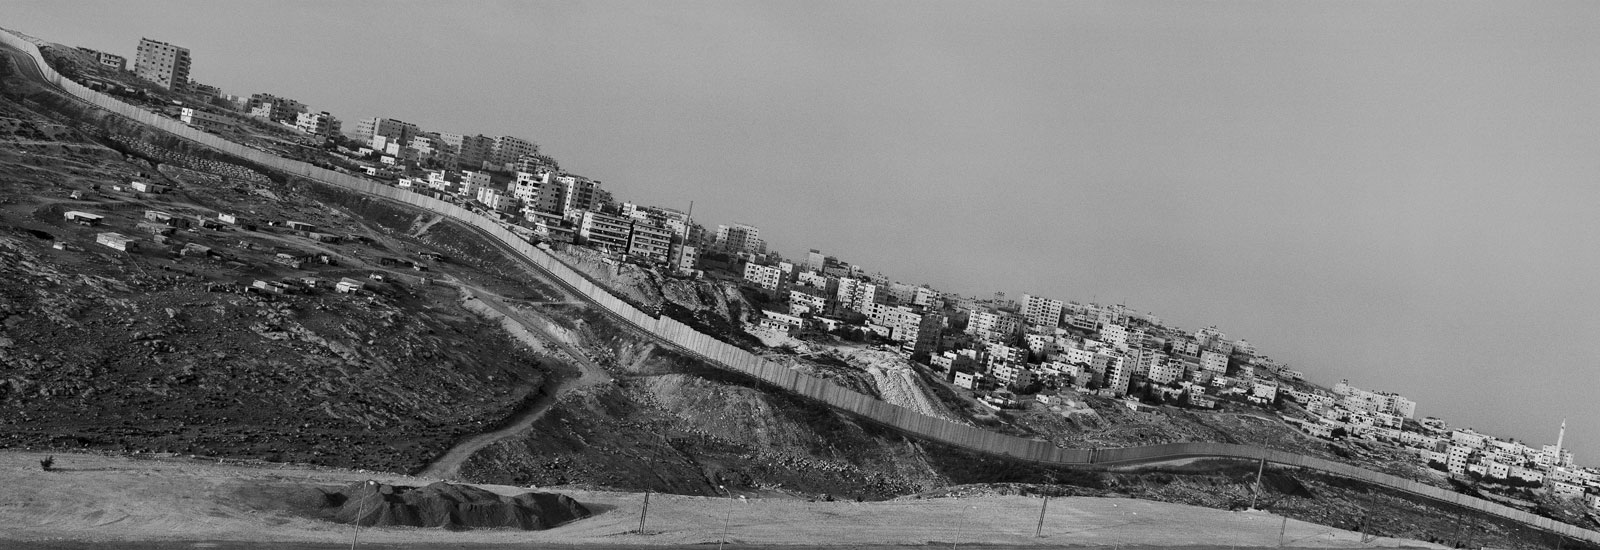 Shu'fat refugee camp (detail) © Josef Koudelka / Magnum Photos